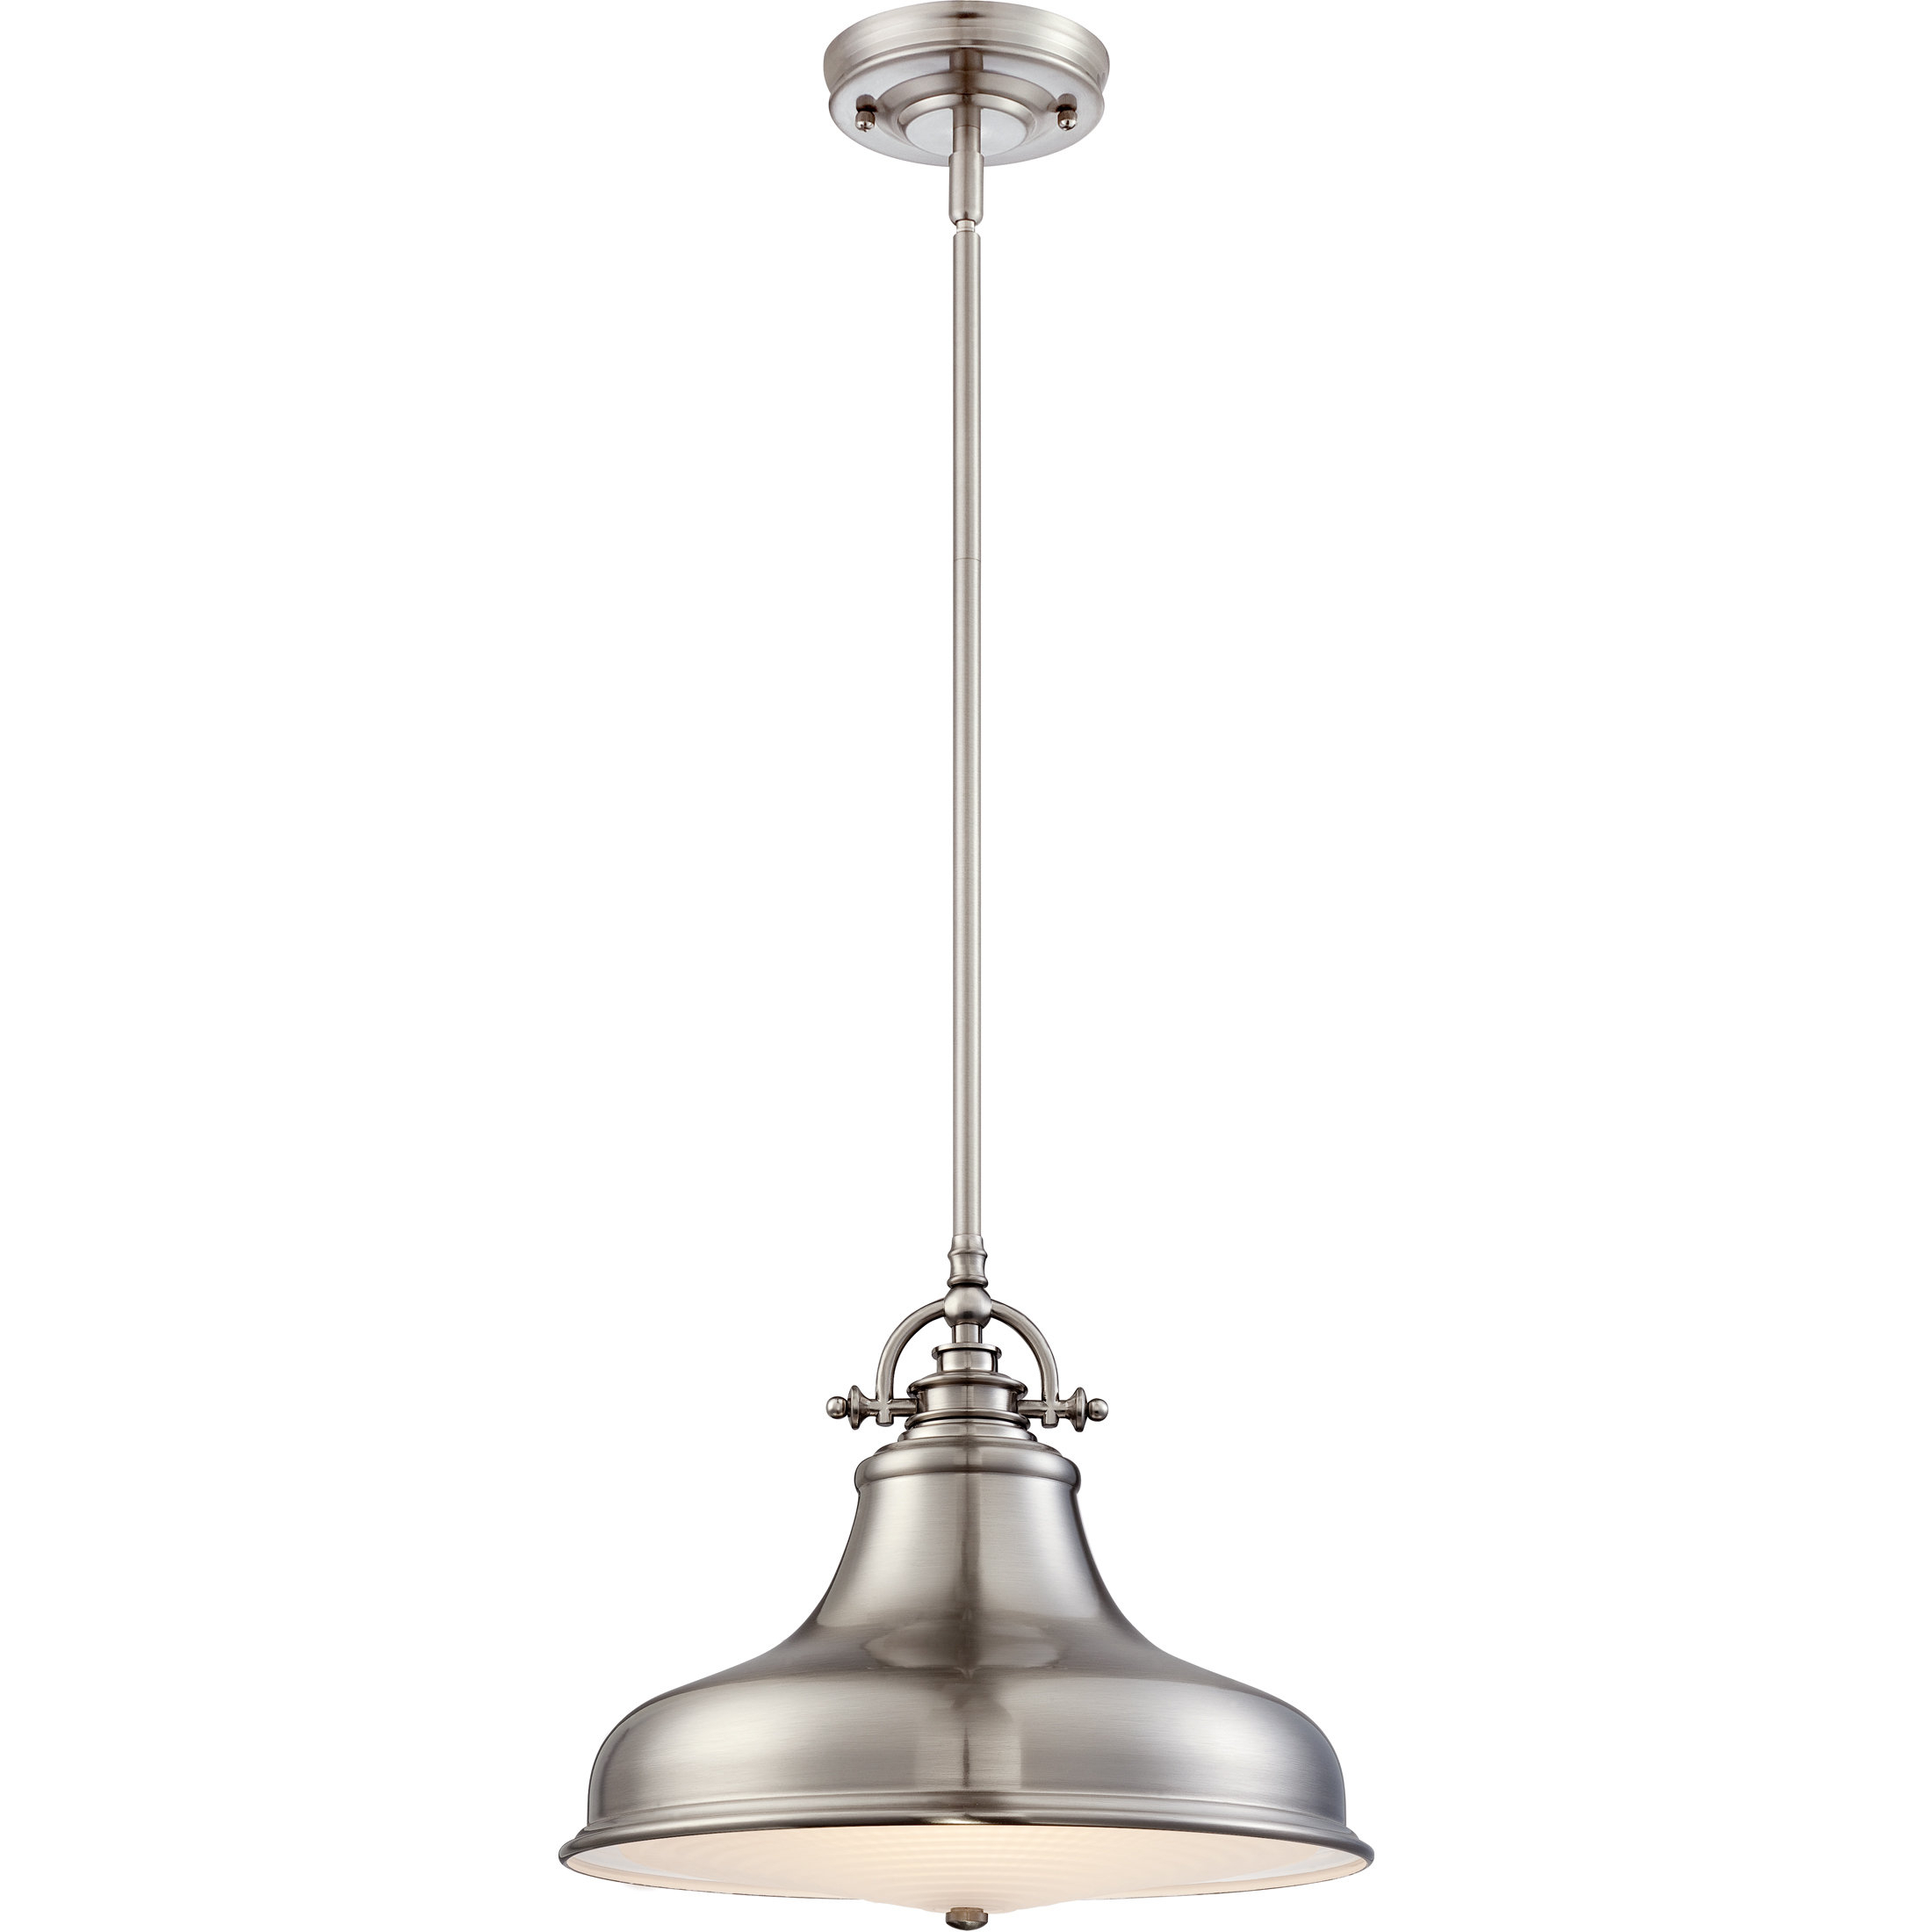 Ninette 1 Light Dome Pendants Pertaining To 2020 Mueller 1 Light Single Dome Pendant (Gallery 19 of 20)